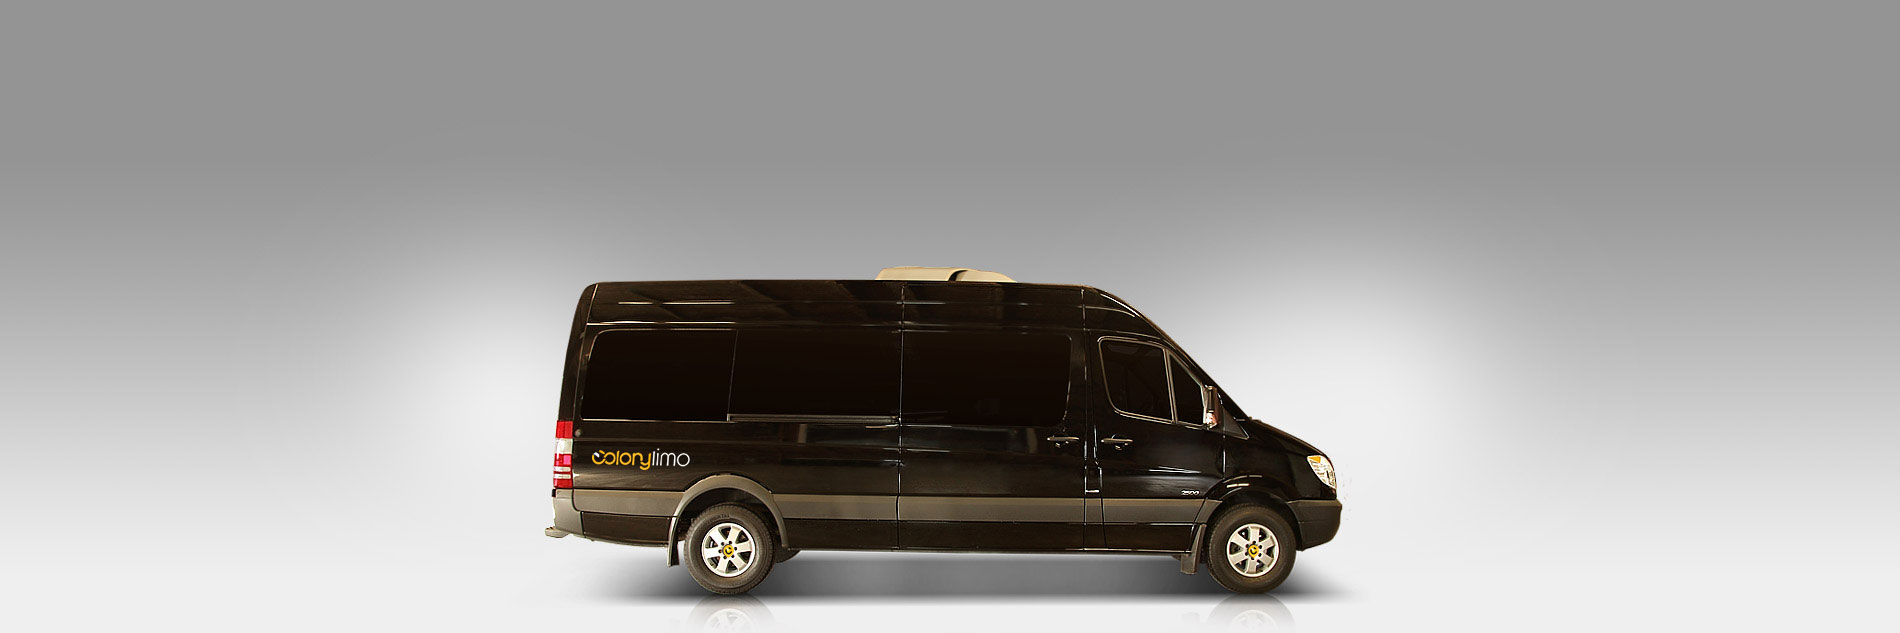 Mercedes sprinter rental autos post for Mercedes benz sprinter rental price